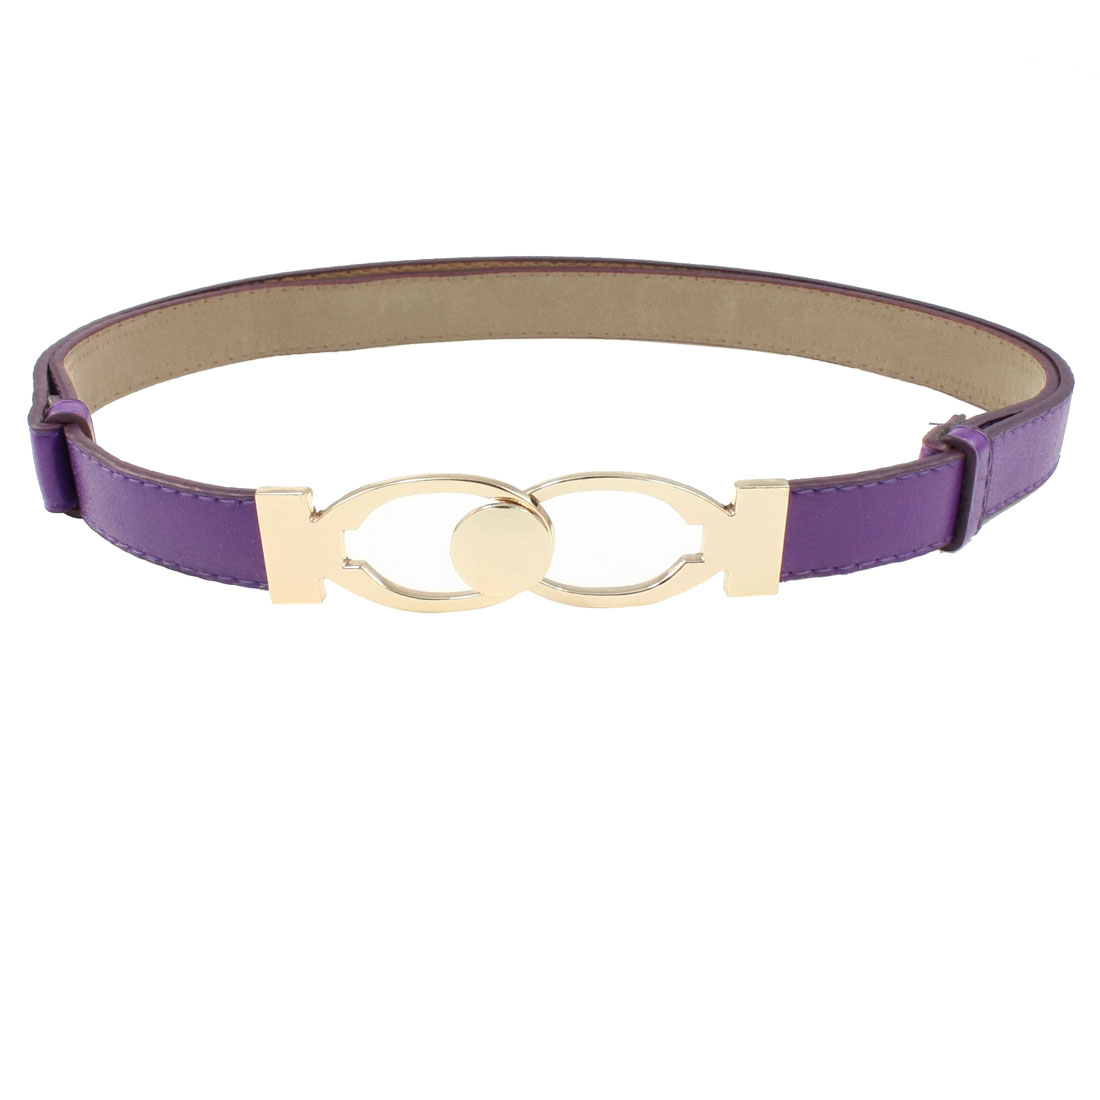 Interlock Buckle Purple Faux Leather Adjustable Sliding Waist Belt for Woman